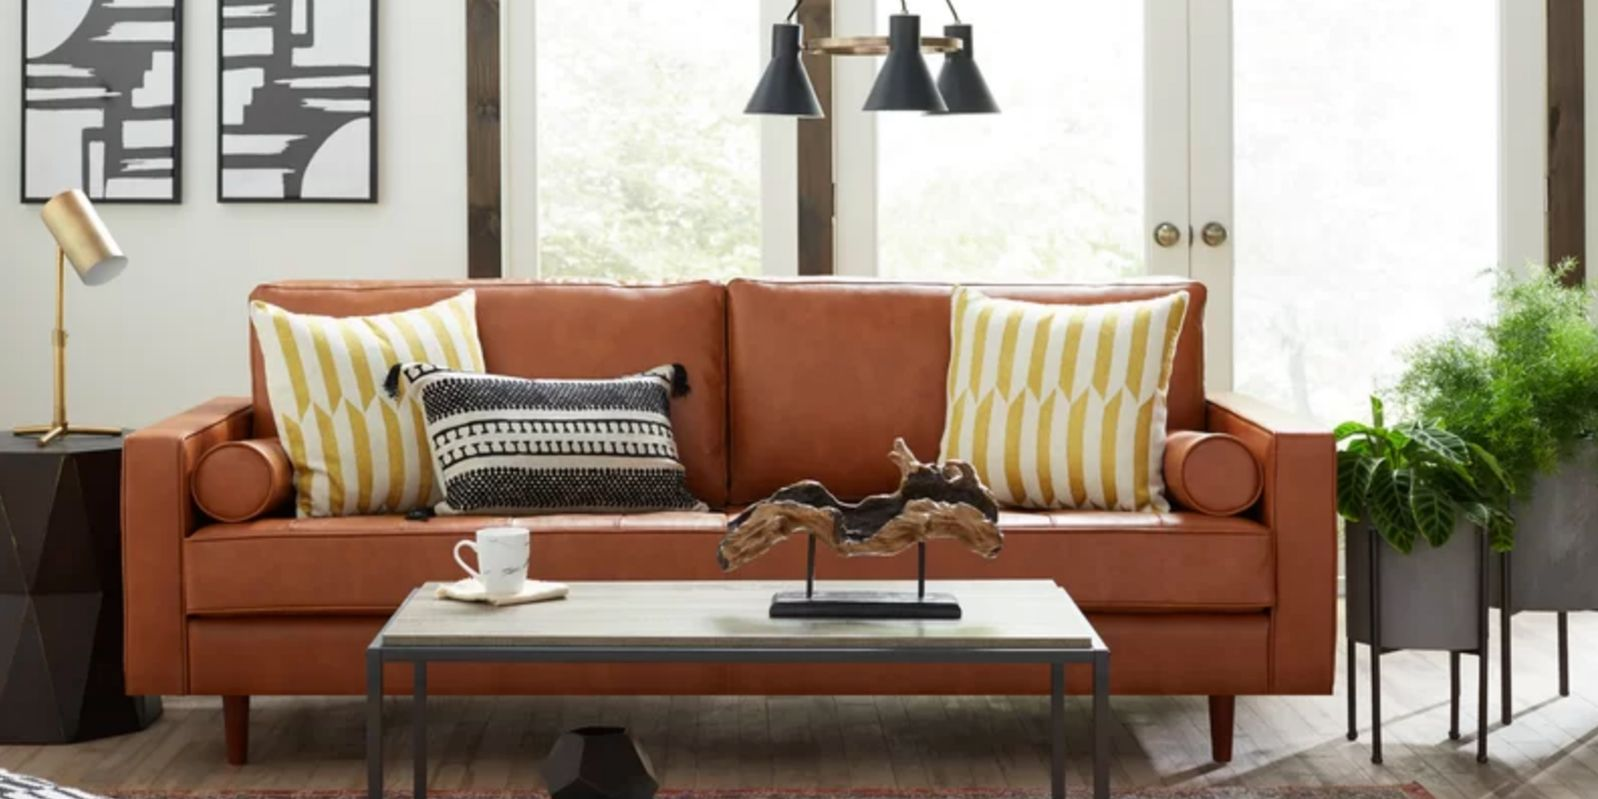 10 Best Leather Sofas to Buy in 2019 - Luxe Brown & Black Leather Sofas